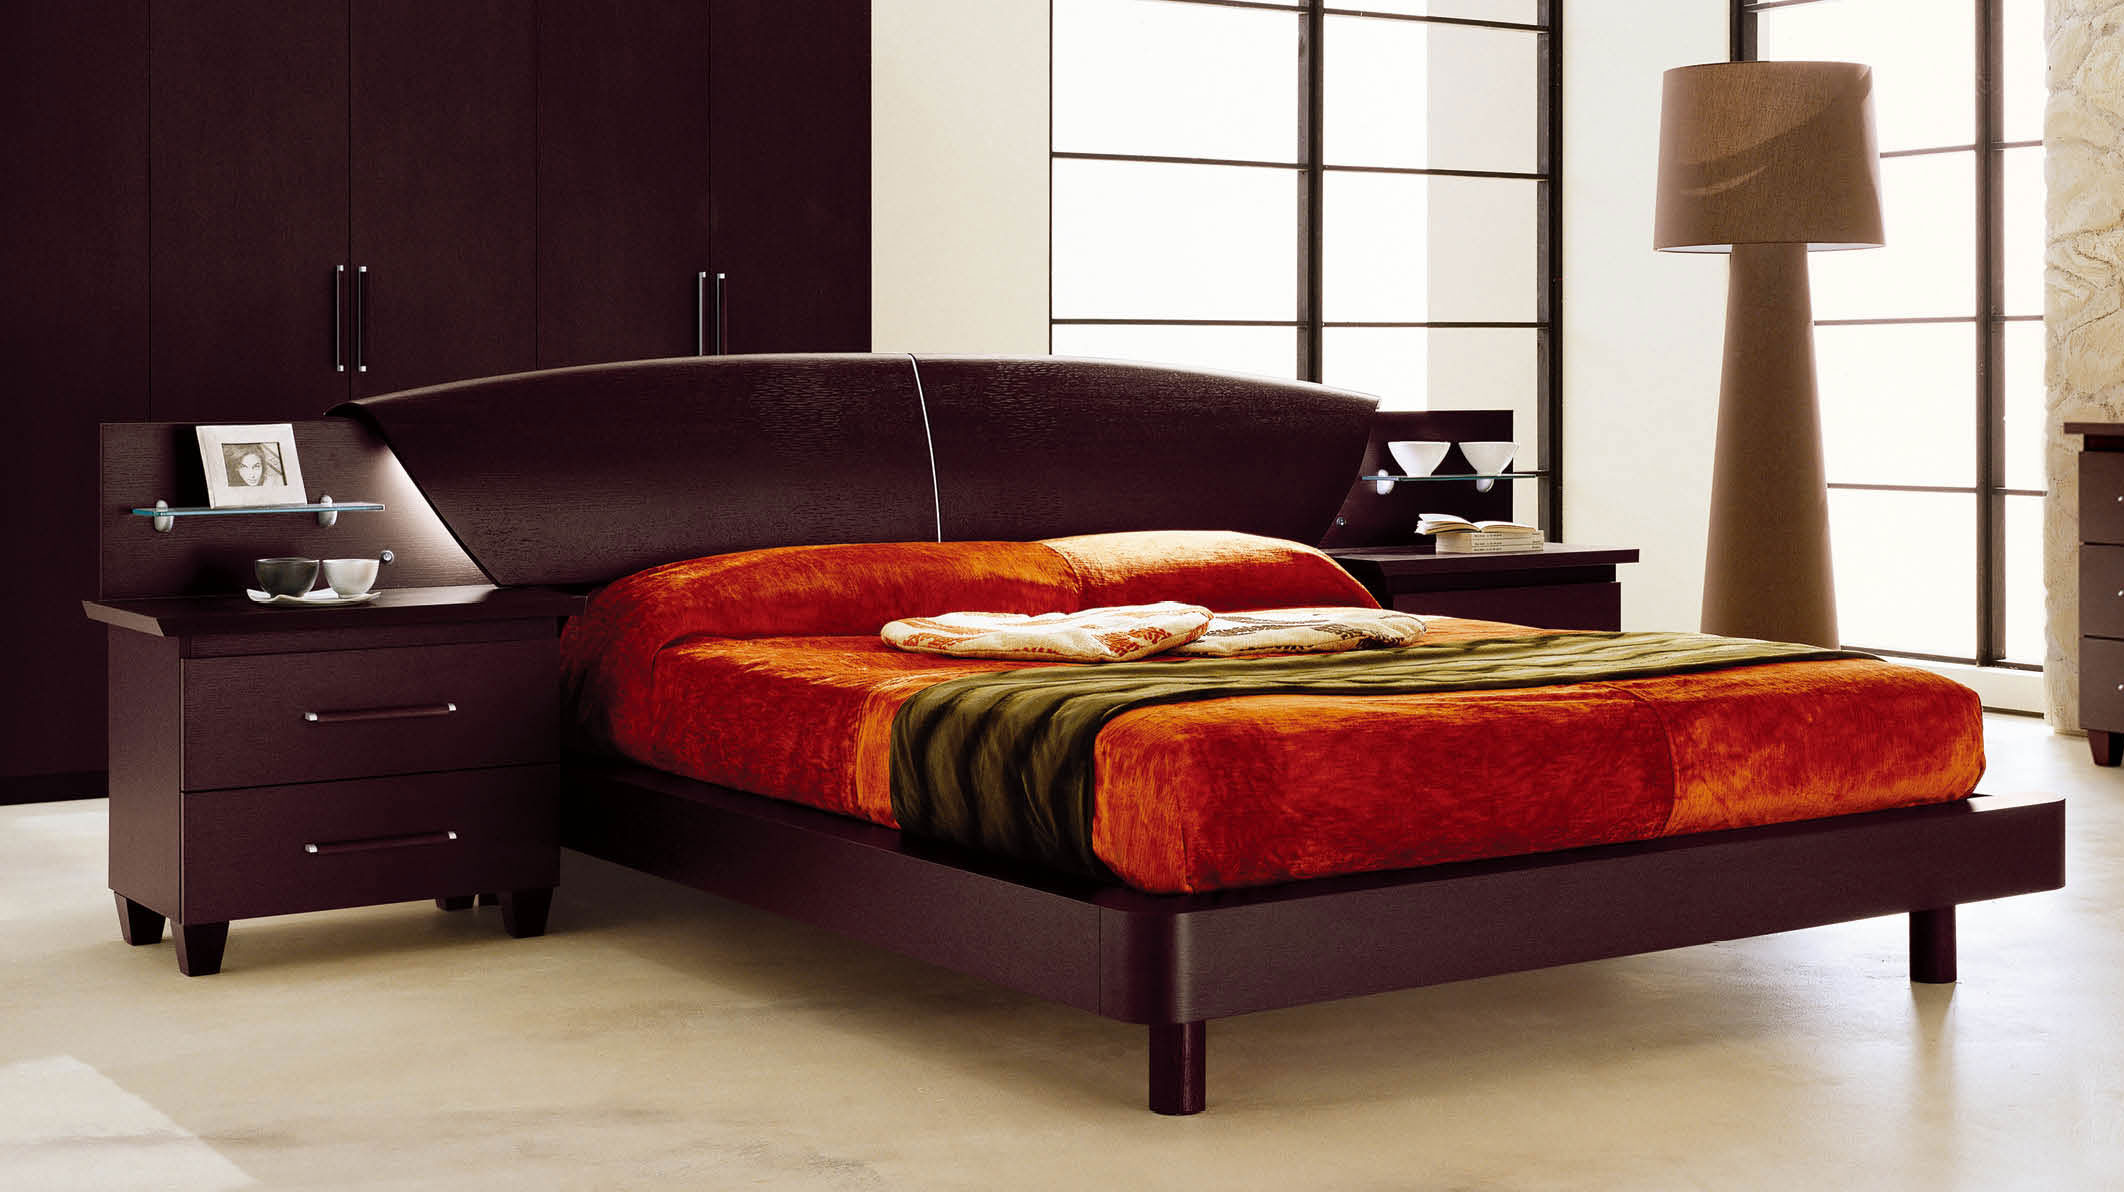 Lacquered Made In Italy Leather Luxury Platform Bed Long Beach California ESFMISSITALIA5